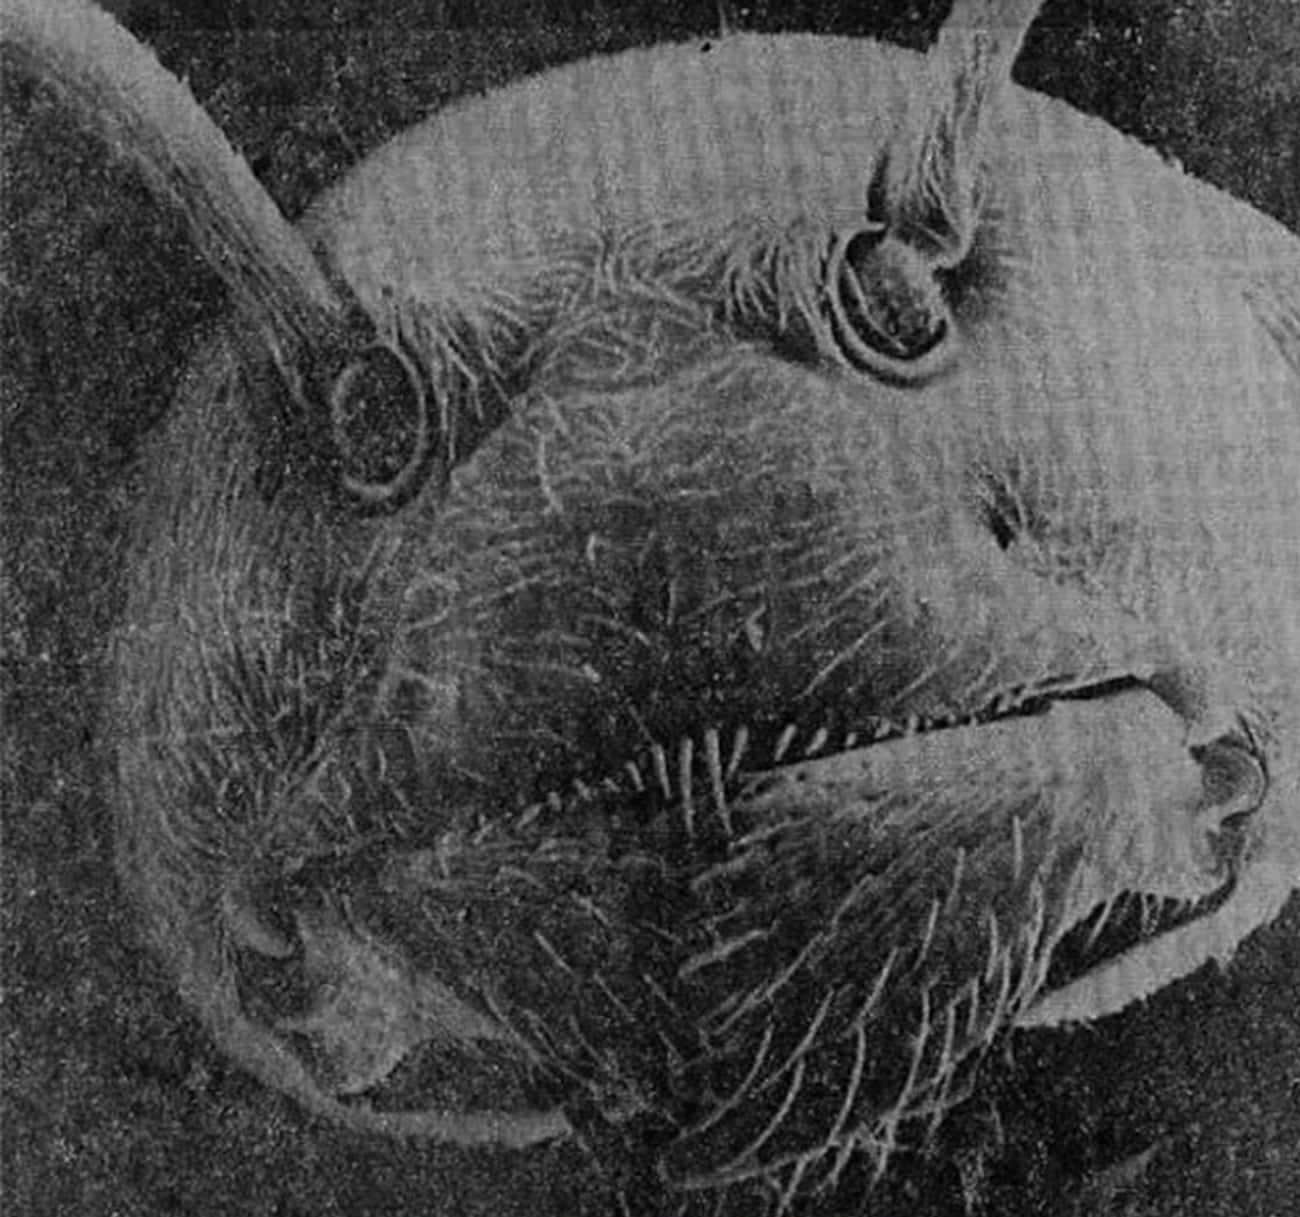 Ant Under Electron Microscope